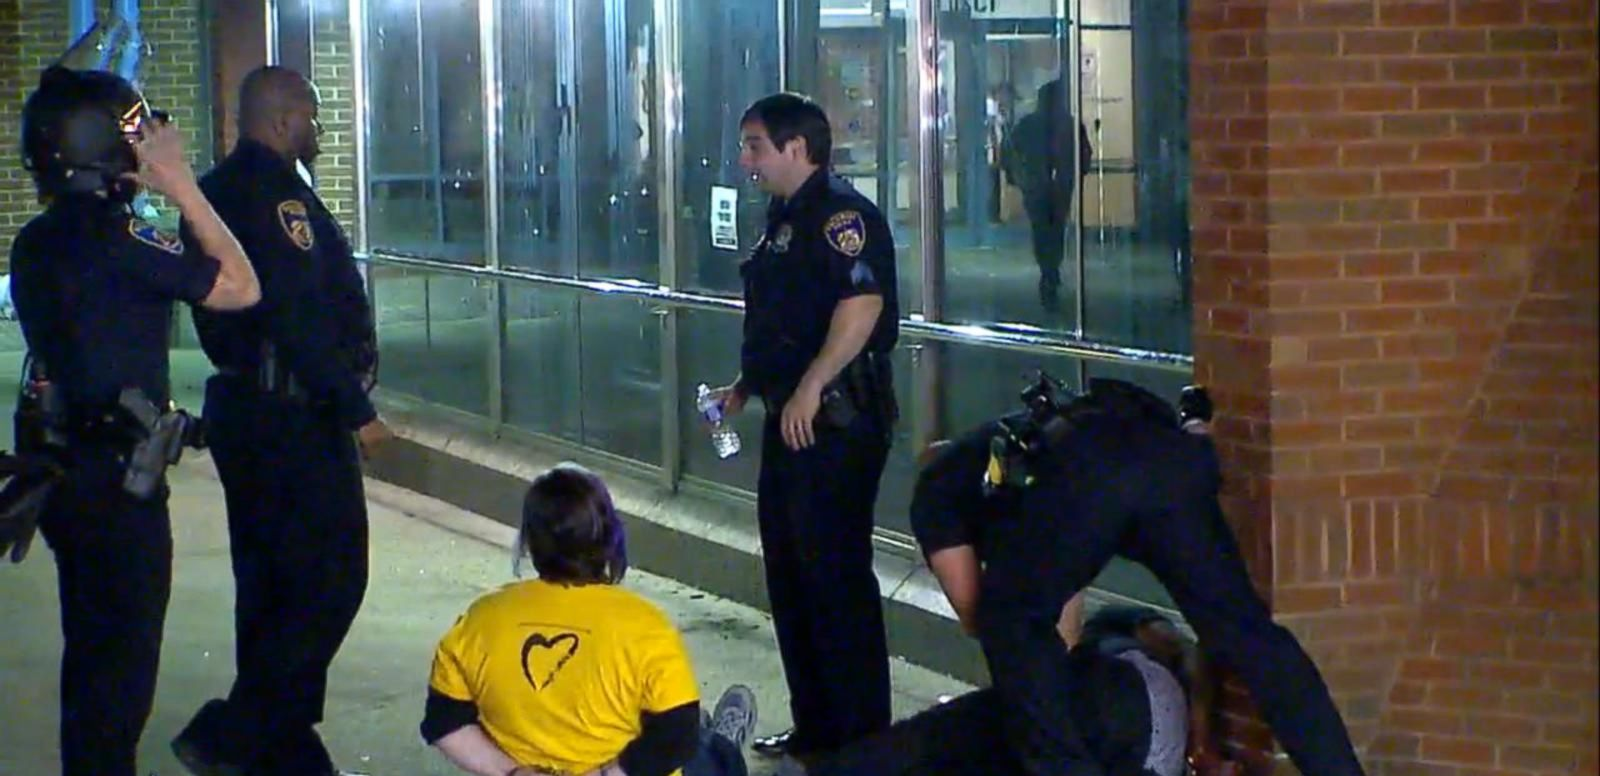 VIDEO: Baltimore Curfew Lifted While Protestors Prepare to Rally Again